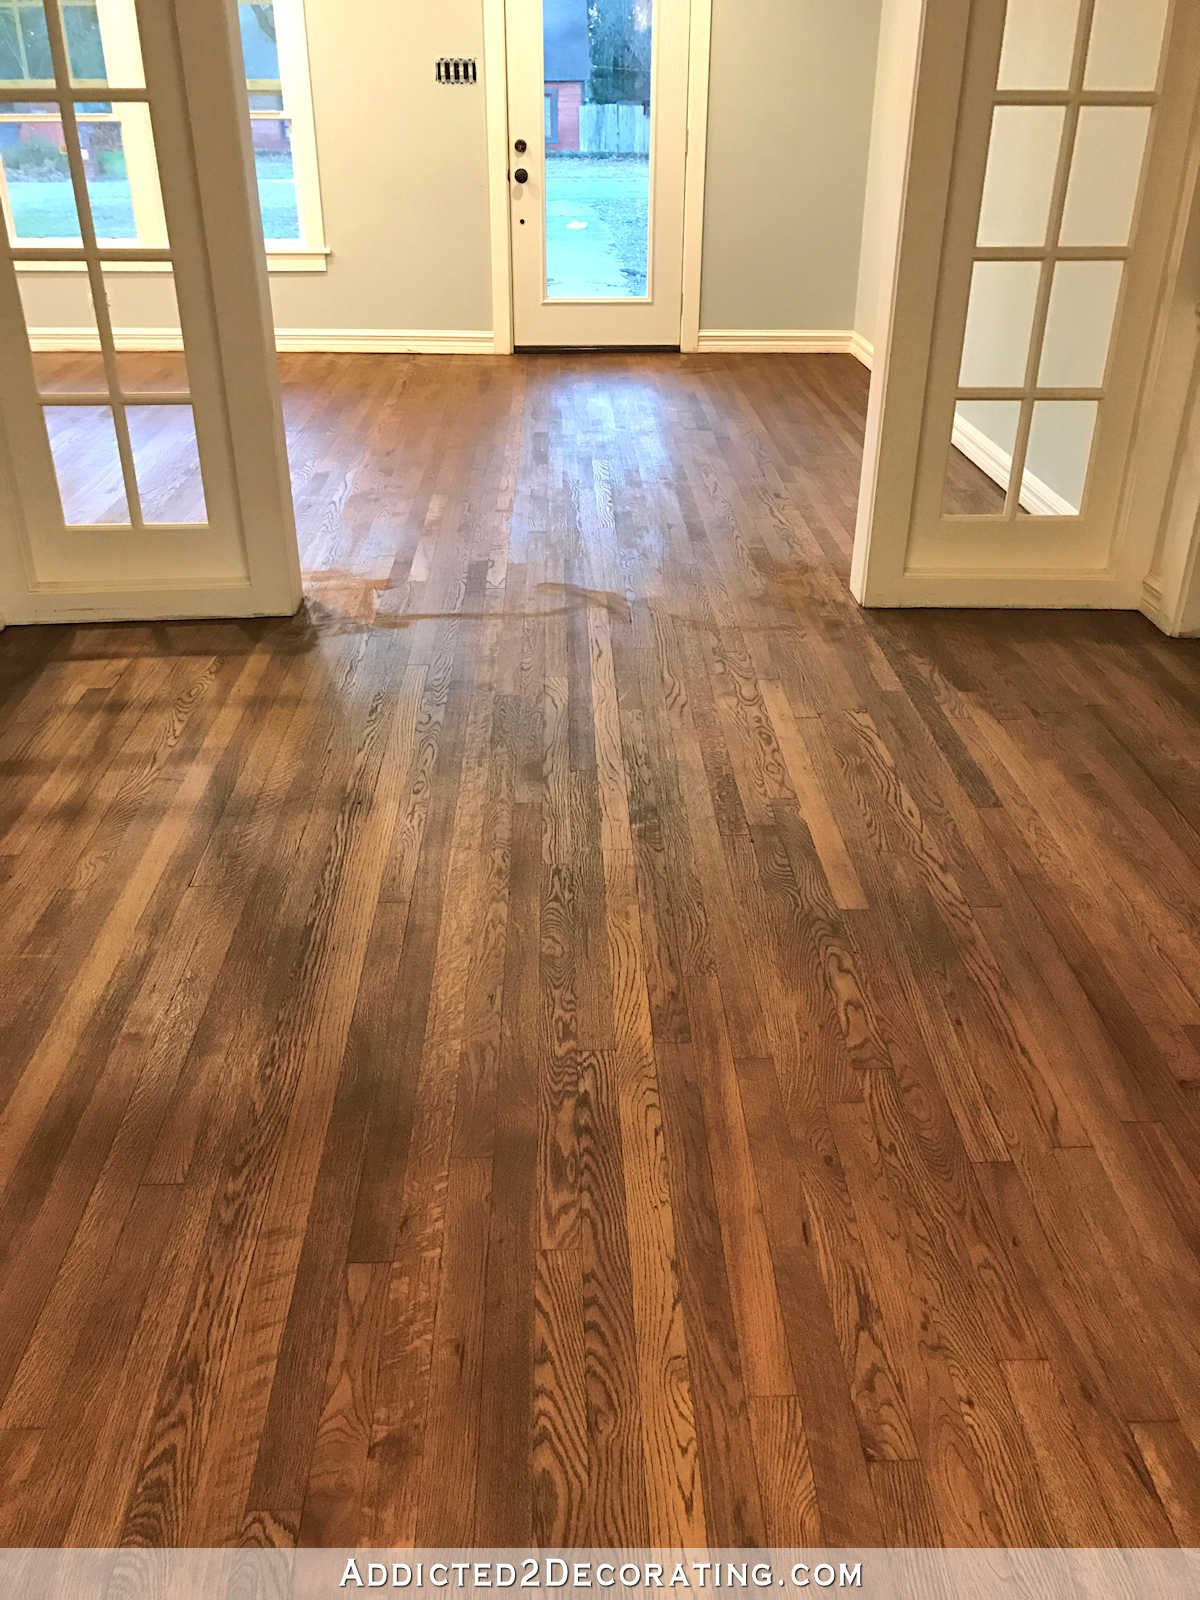 how to refinish hardwood floors yourself without sanding of 14 luxury diy refinish hardwood floors photograph dizpos com intended for diy refinish hardwood floors best of adventures in staining my red oak hardwood floors products